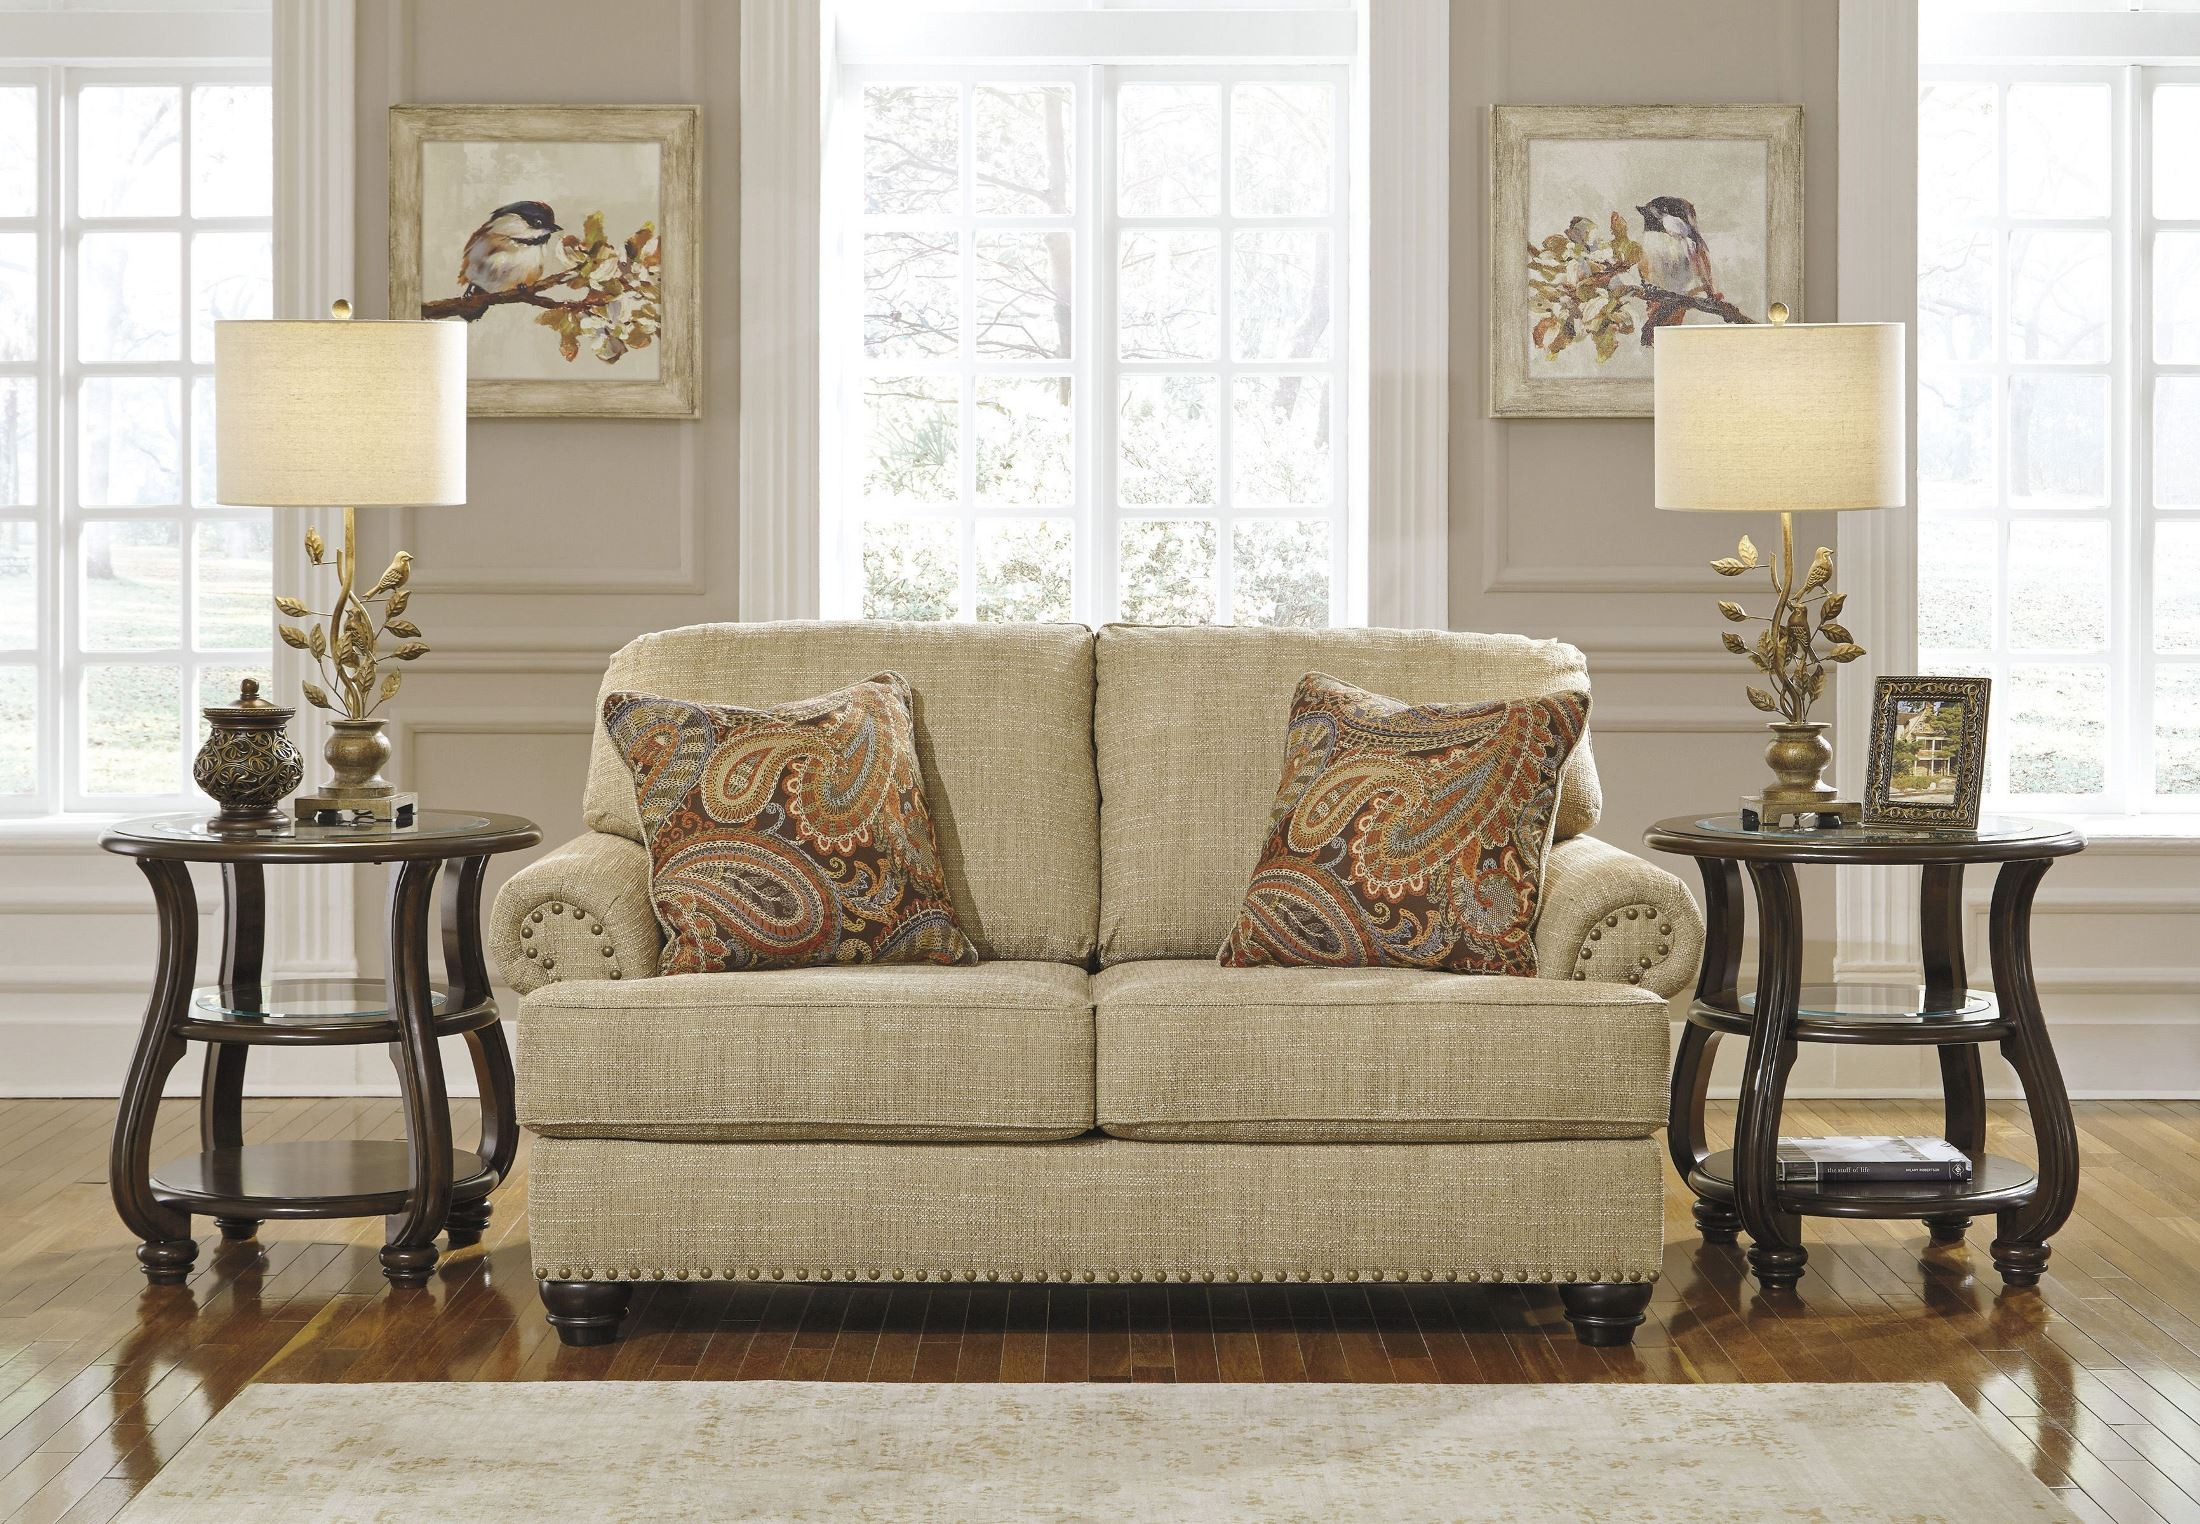 buy chair candoro oatmeal loveseat from coleman furniture 11806 | 11806 35 set